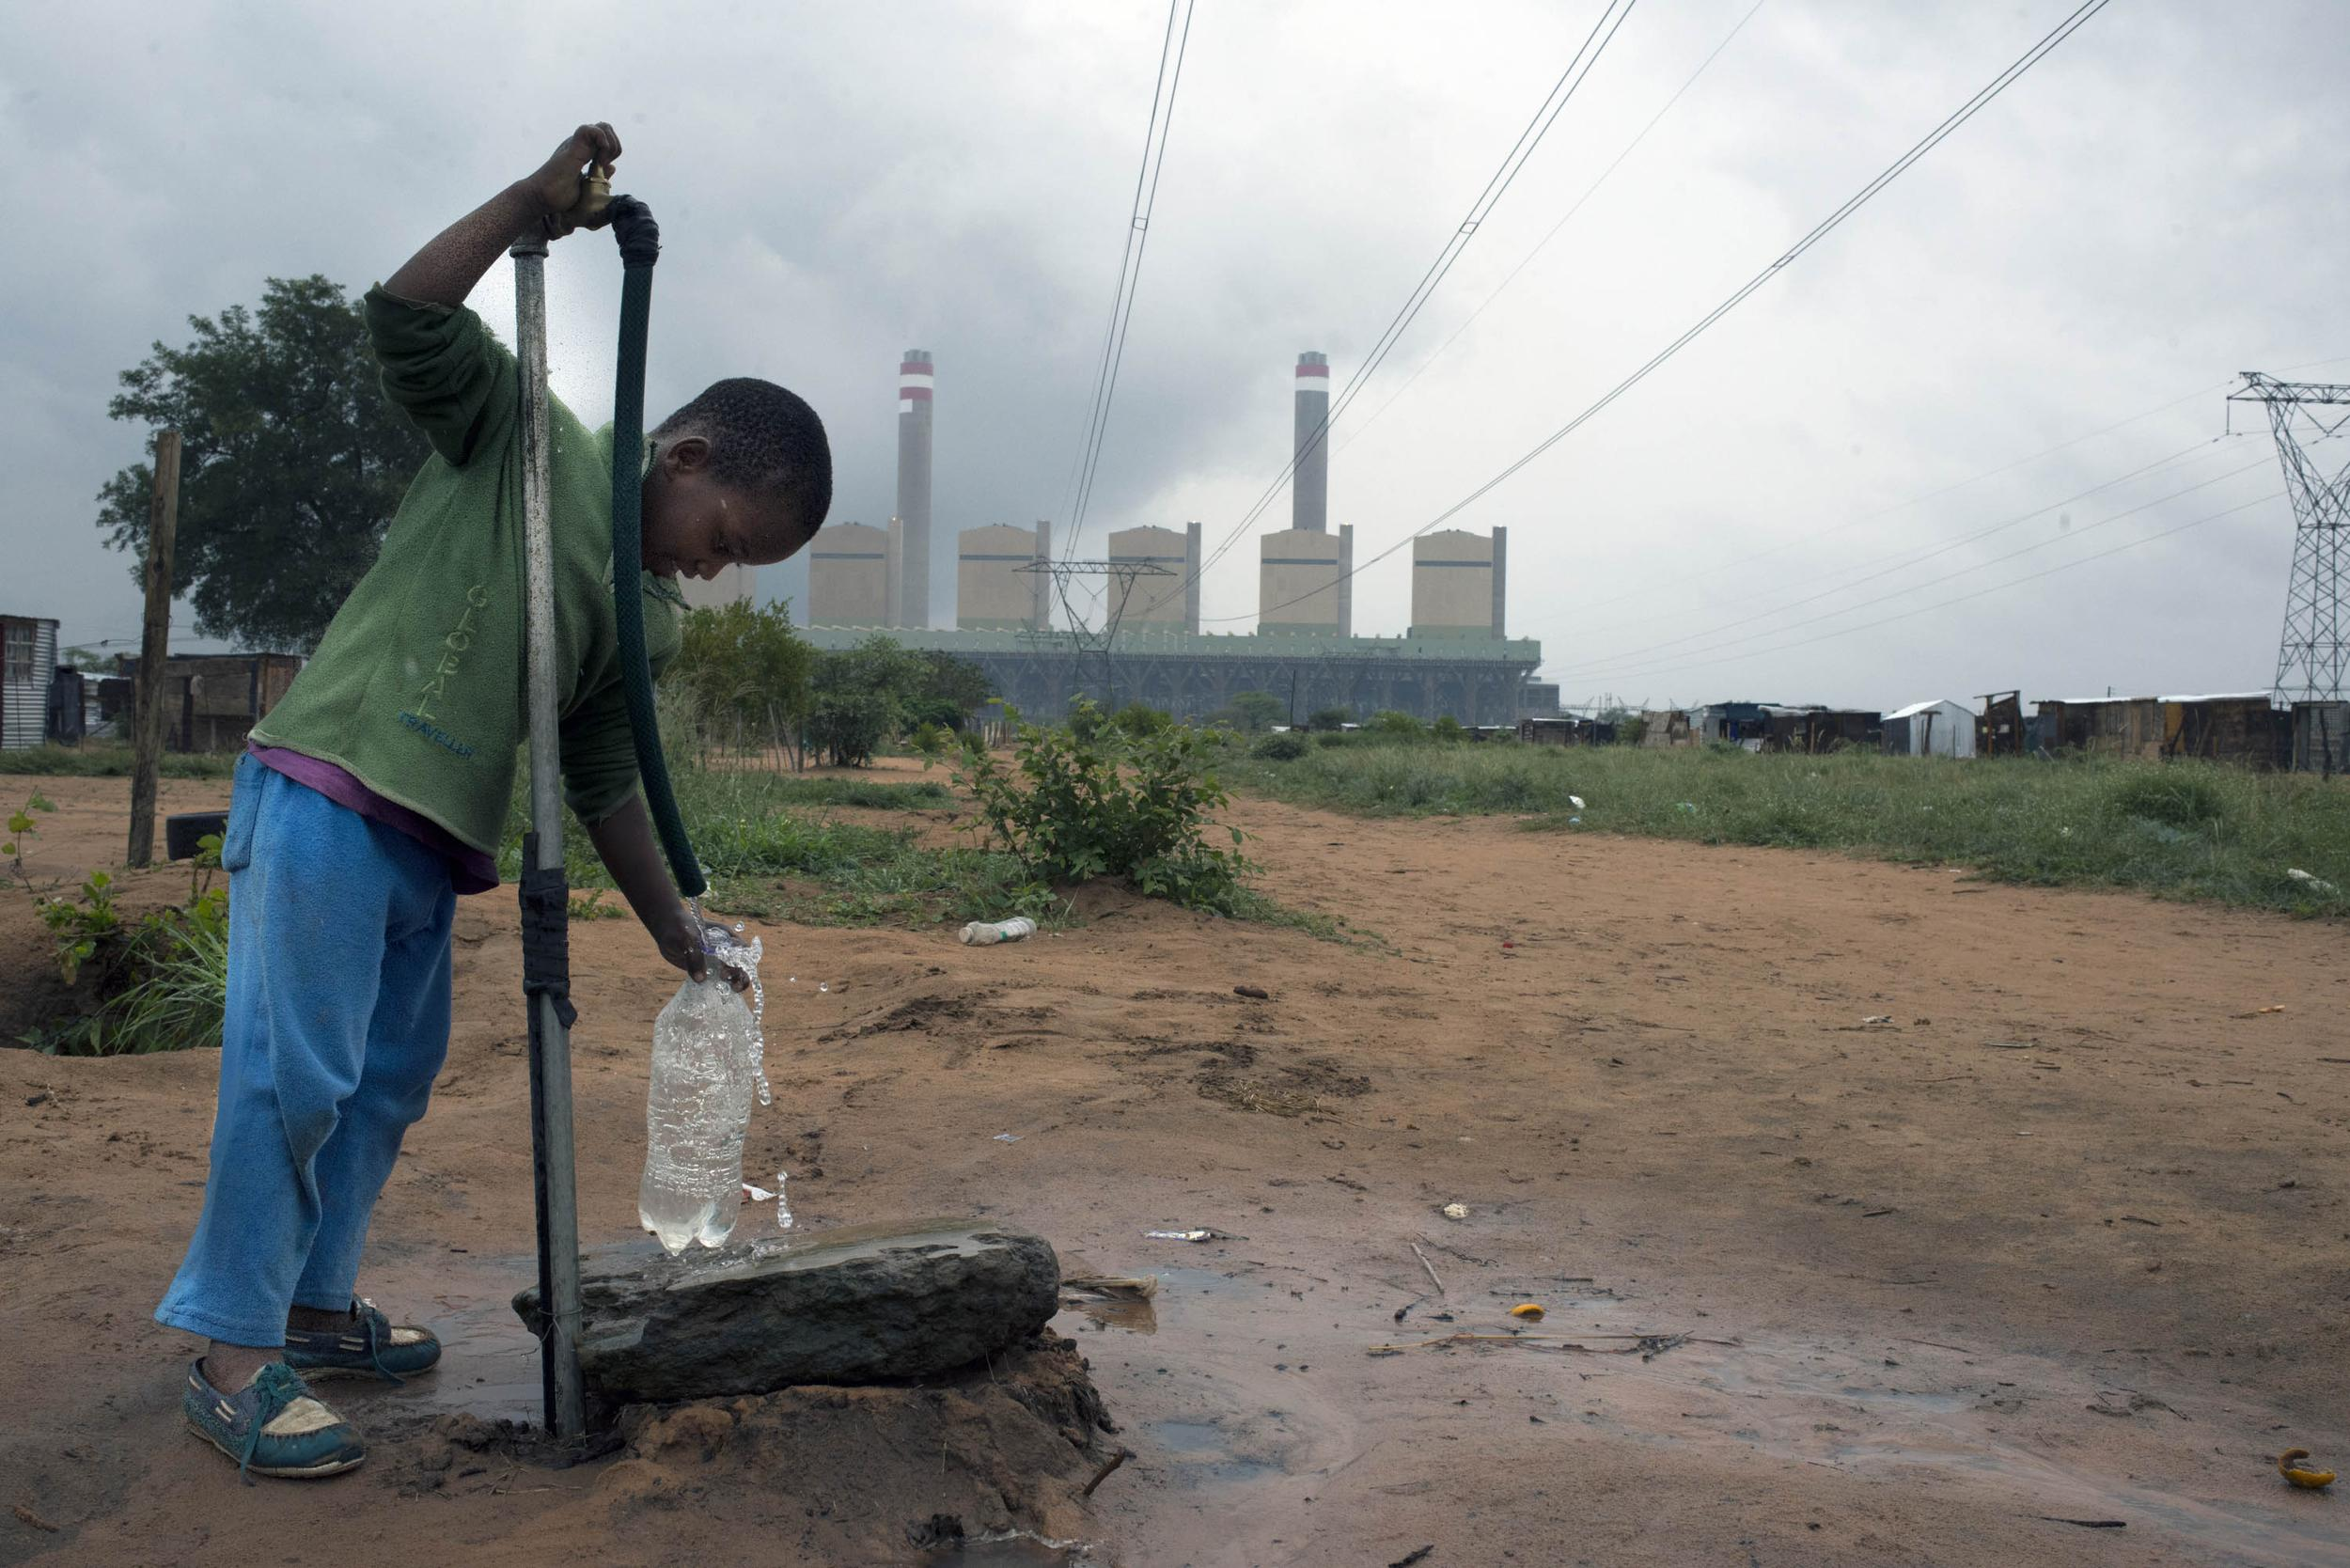 A small boy at a water tap in blue trousers and a green top. The red earth is wet around the tap and the sky is grey, in the background a power station with lines and pylons.